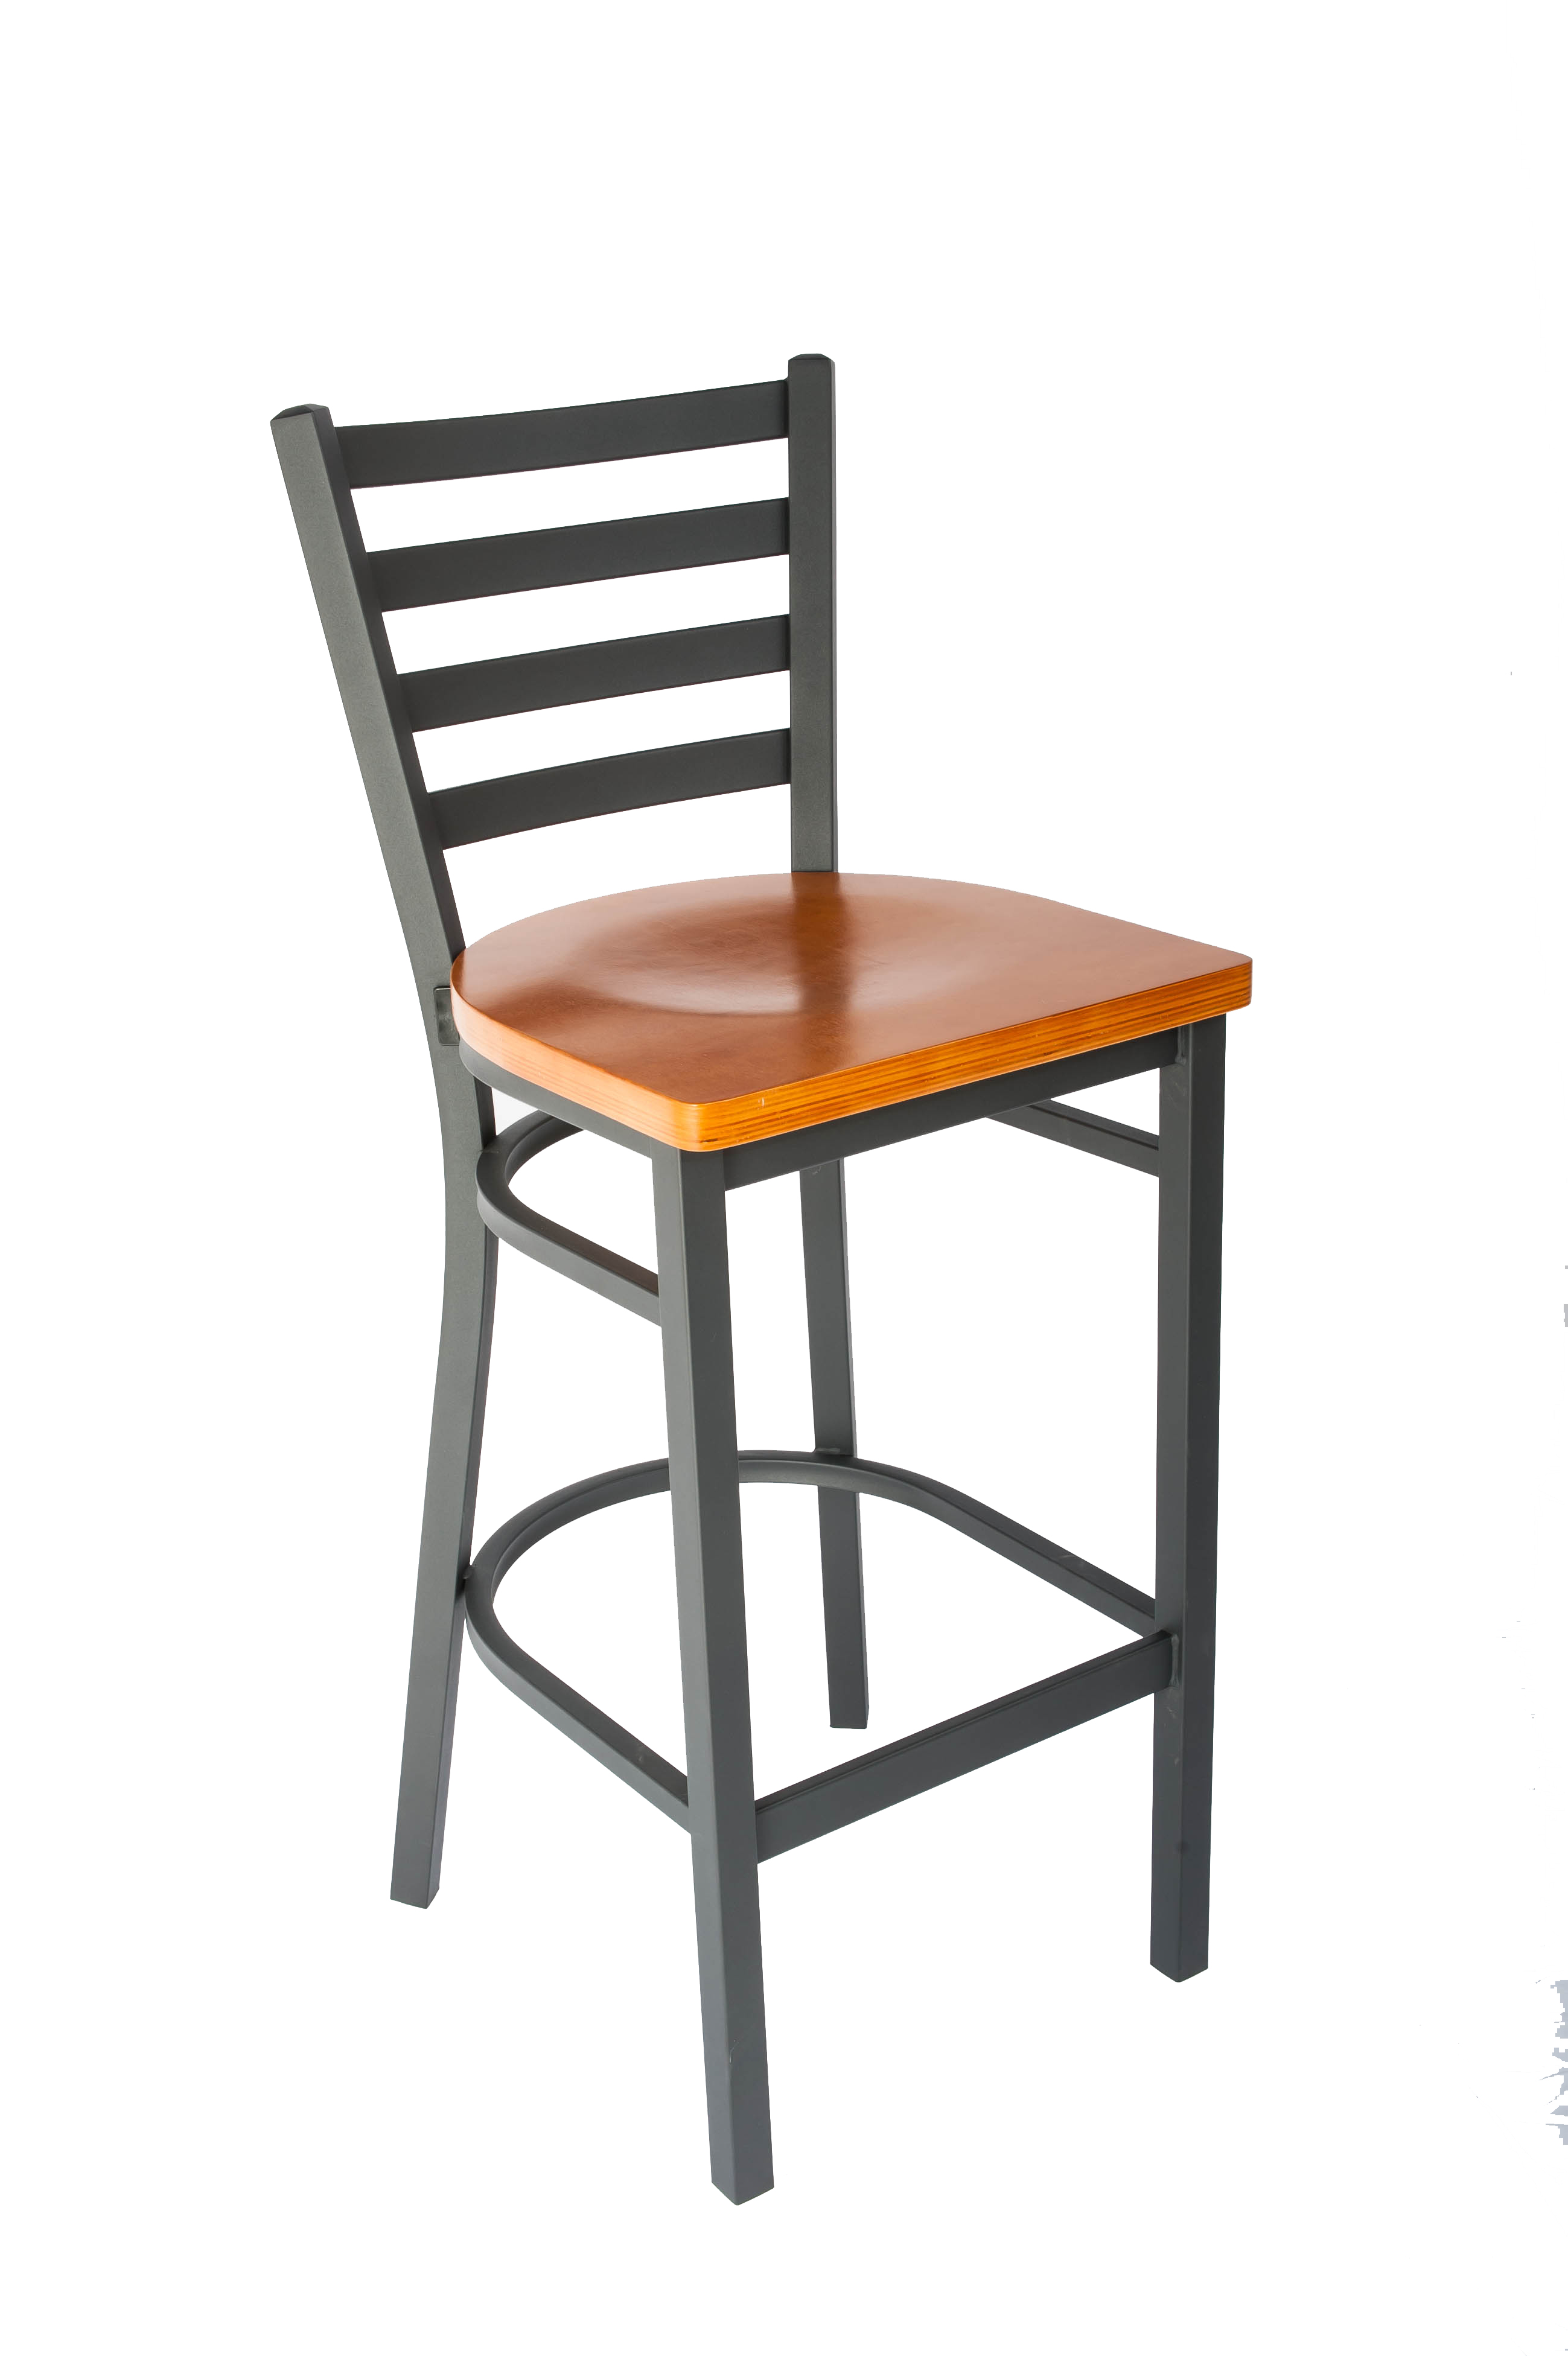 white metal and wood chairs british mobility horse ladder back bar stools j1001b commercial